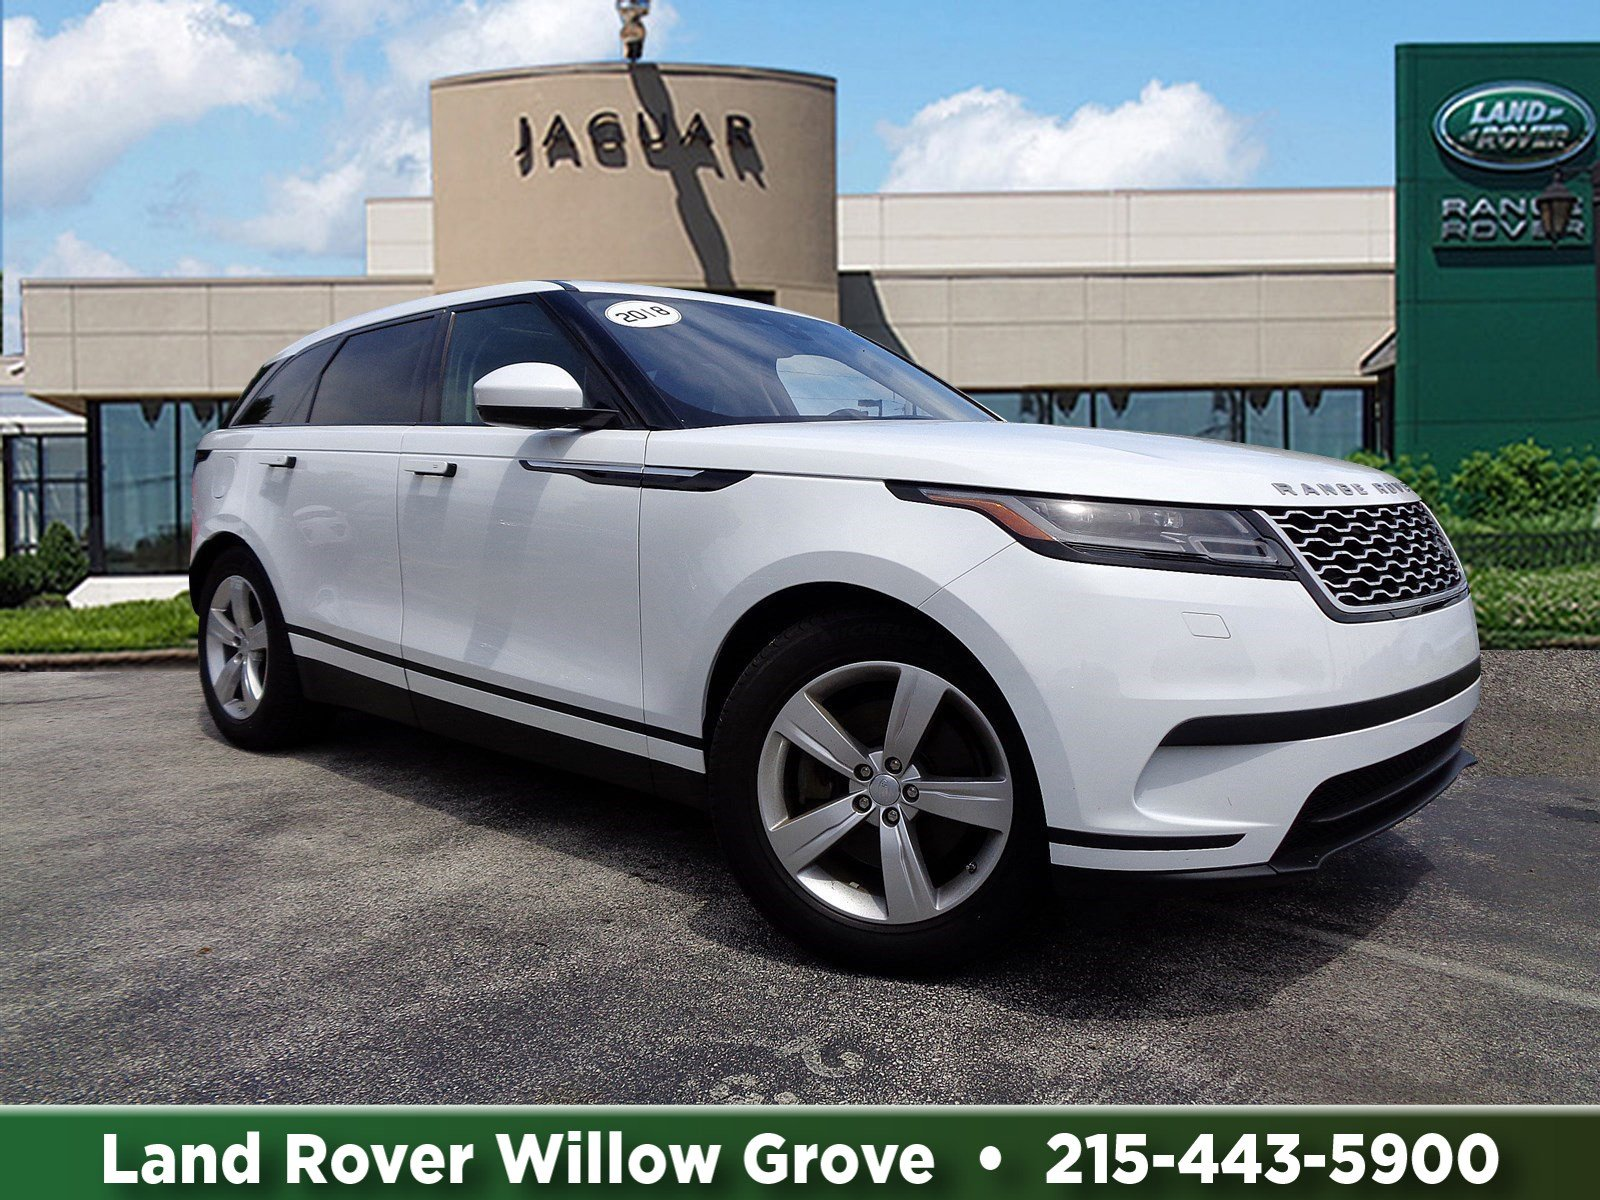 Certified Pre-Owned 2018 Land Rover Range Rover Velar S With Navigation & 4WD